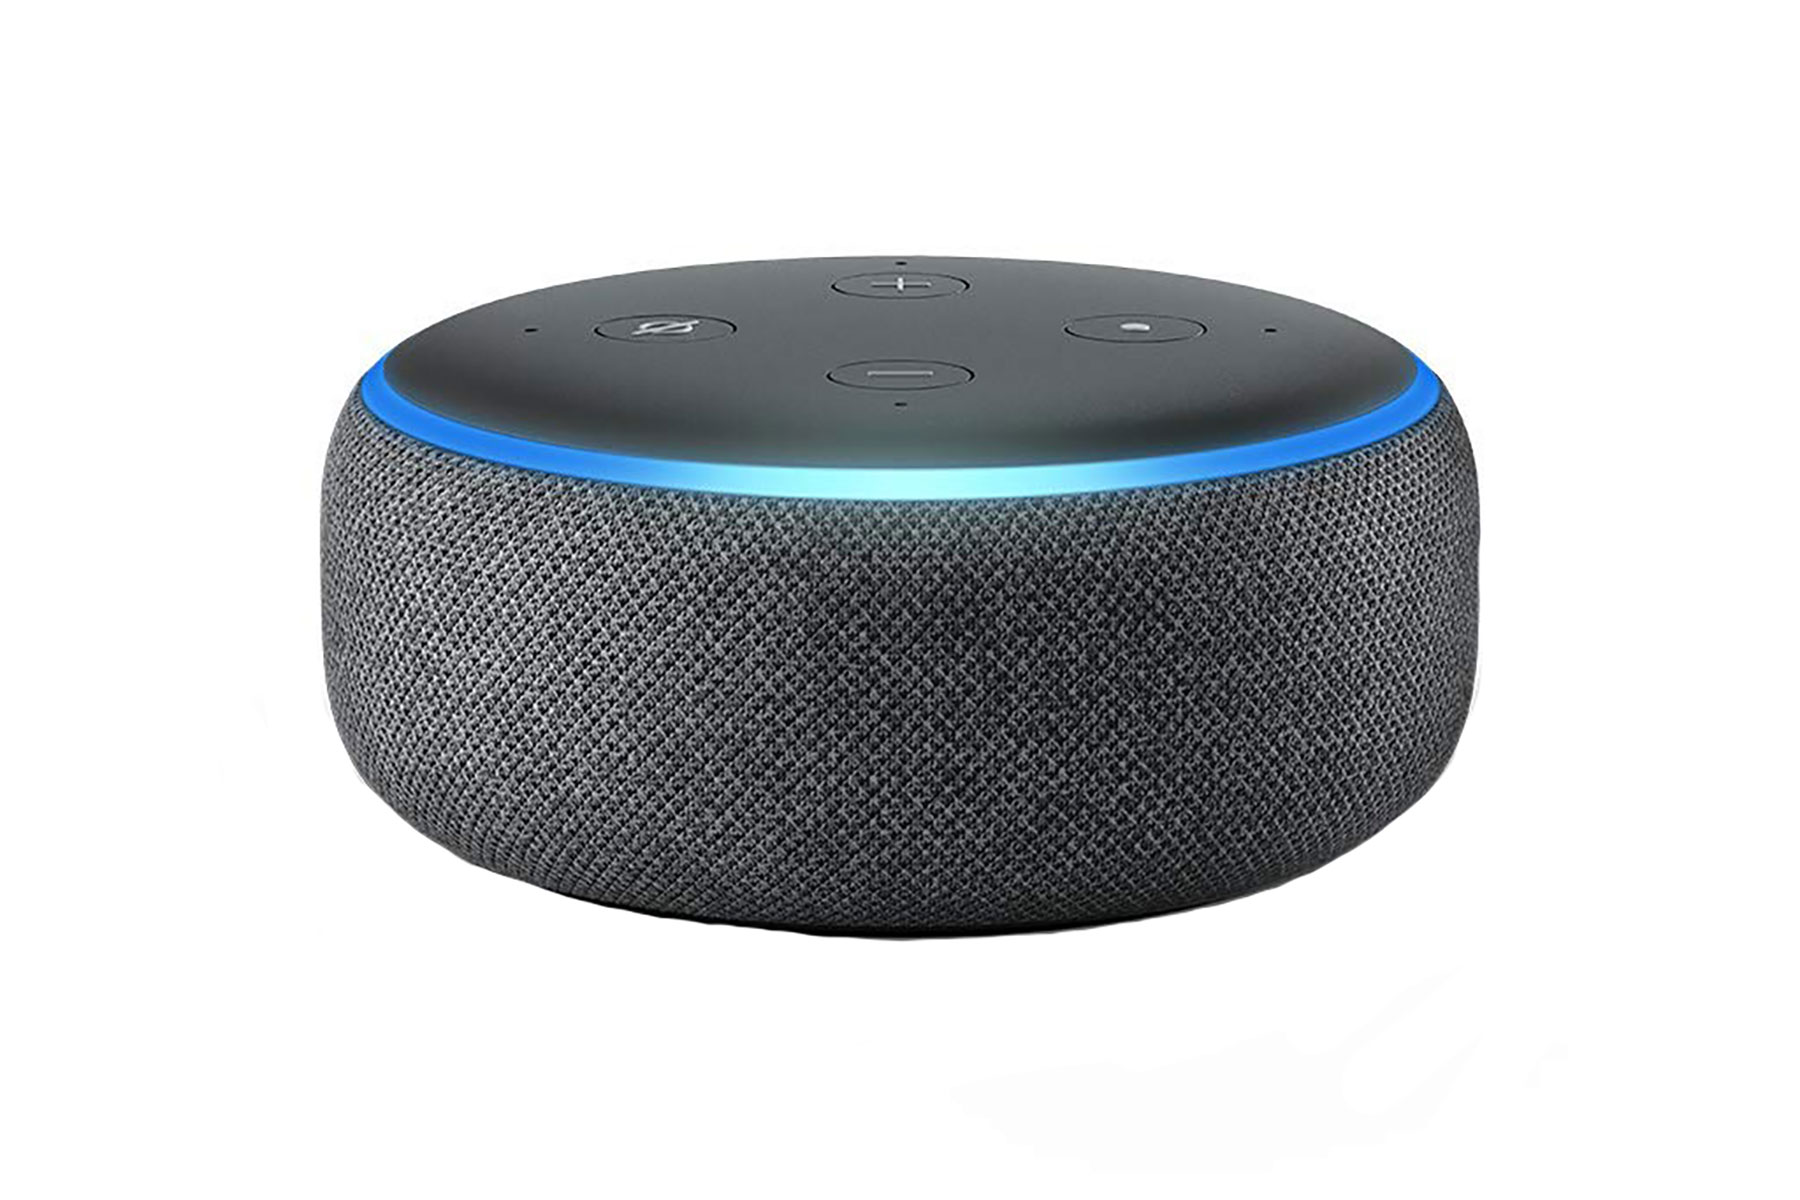 Amazon Echo Dot Smart Speaker with Alexa